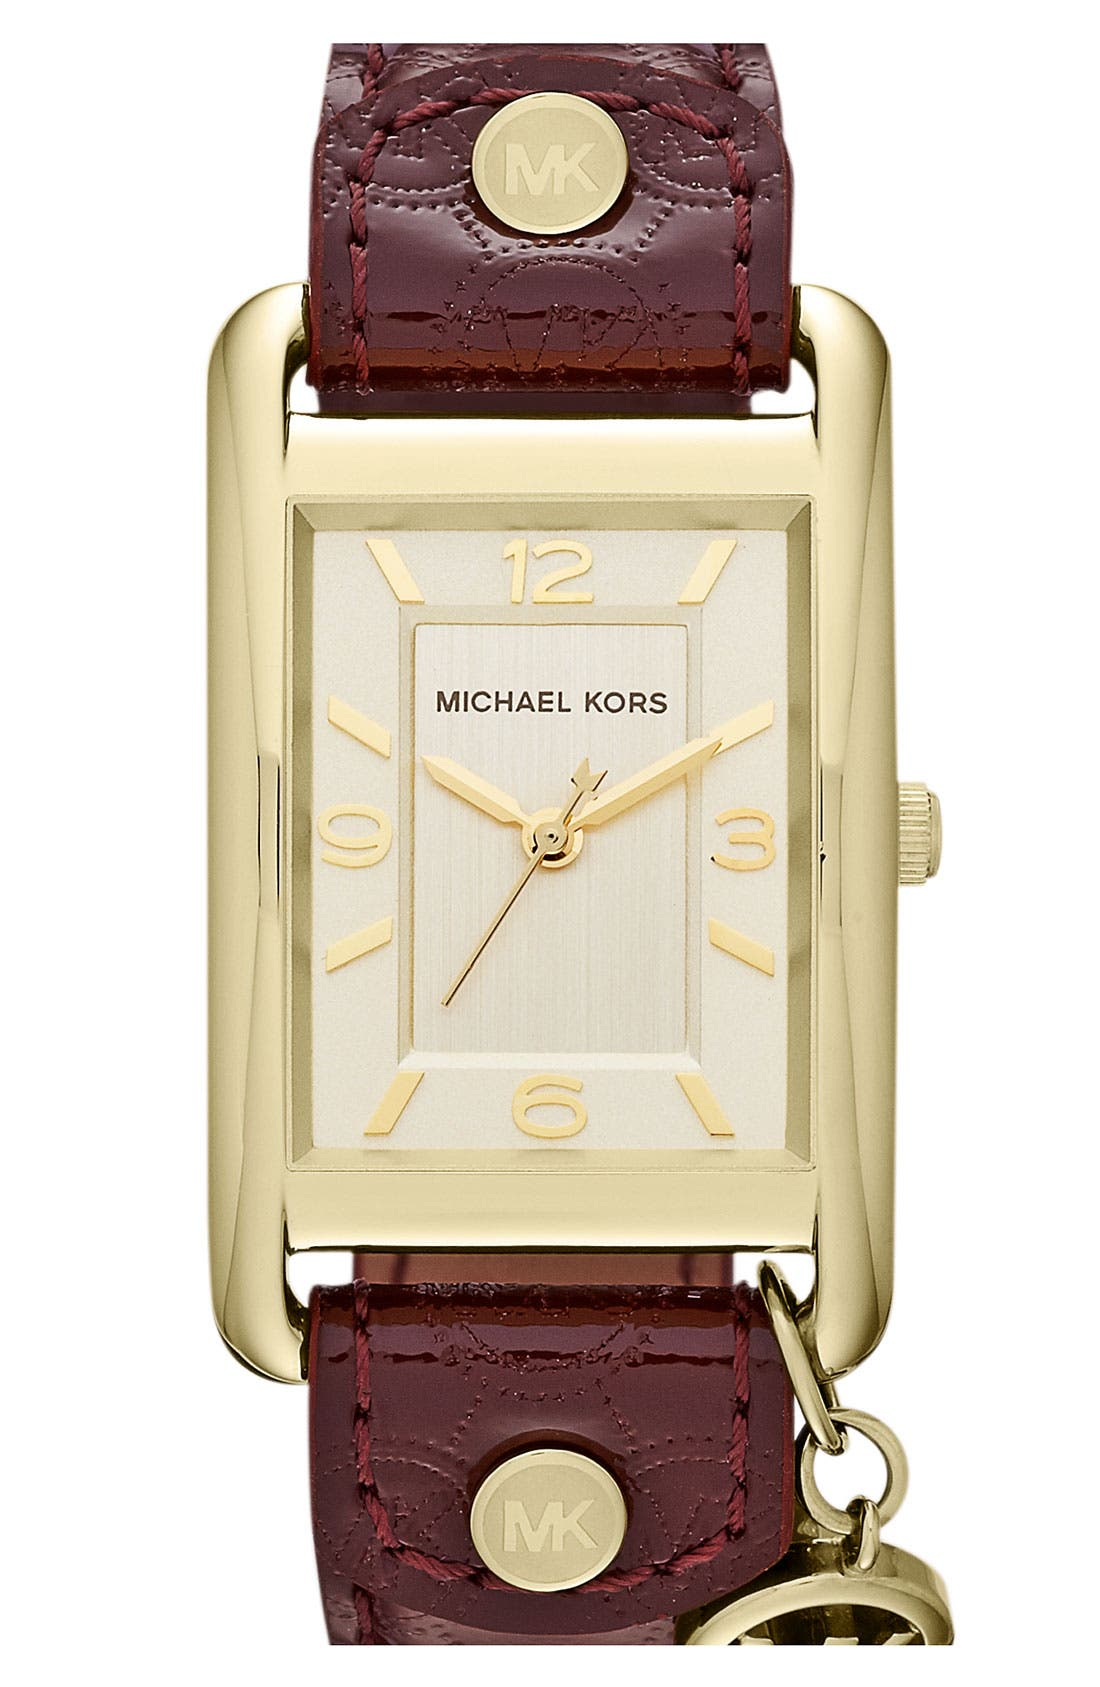 Main Image - Michael Kors 'Taylor' Square Leather Strap Watch, 26mm x 32mm